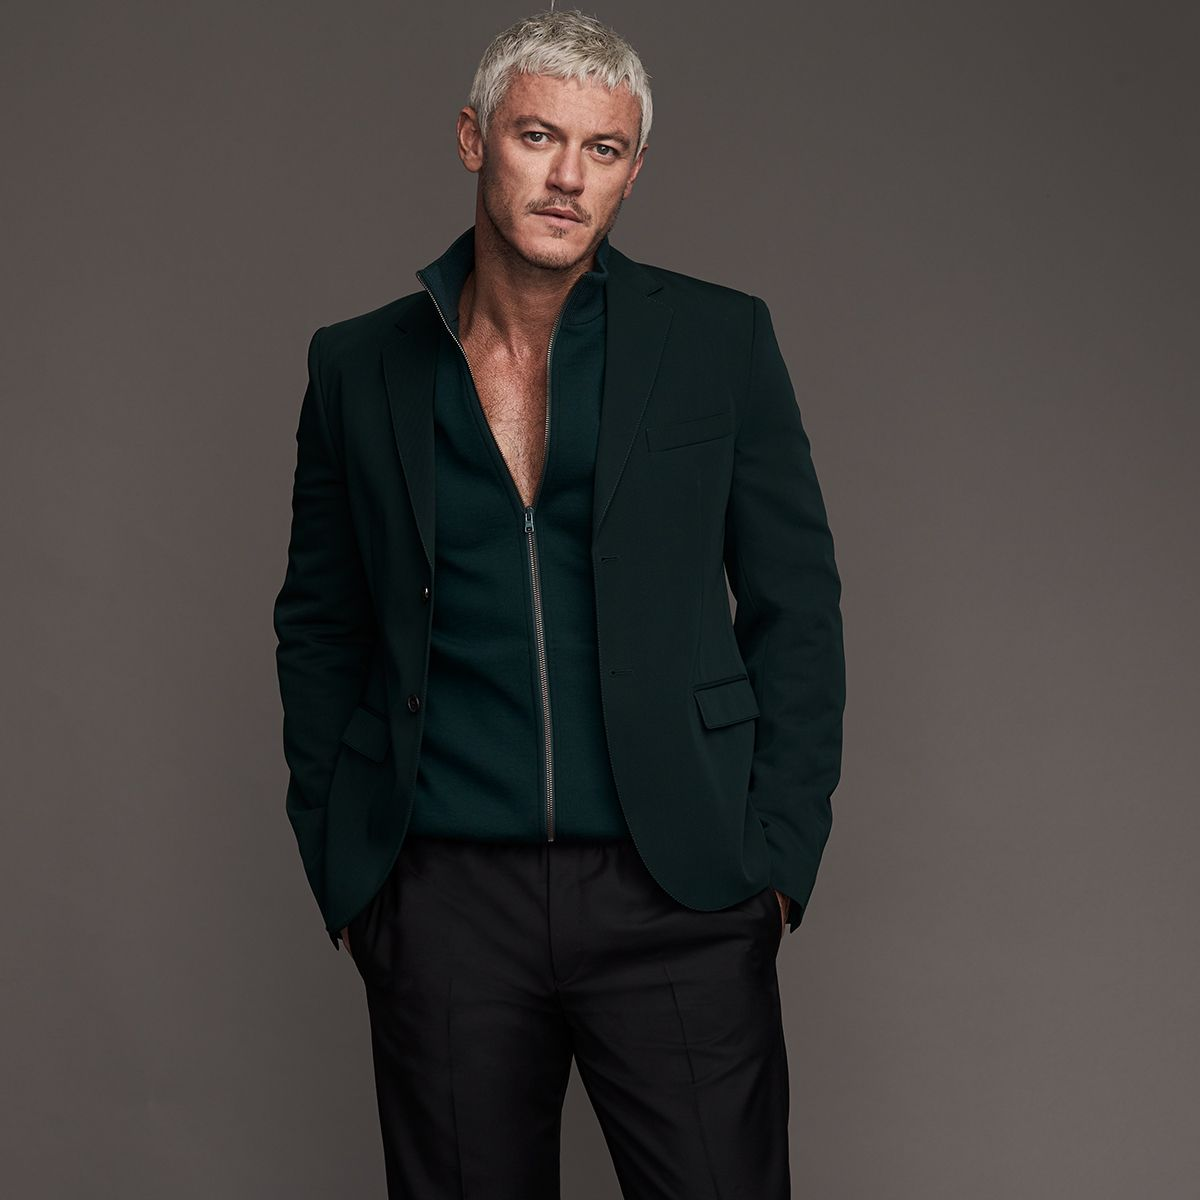 Le Meilleur Mr Luke Evans For Mr Porter Wearing Marni Wool Blazer Ce Mois Ci